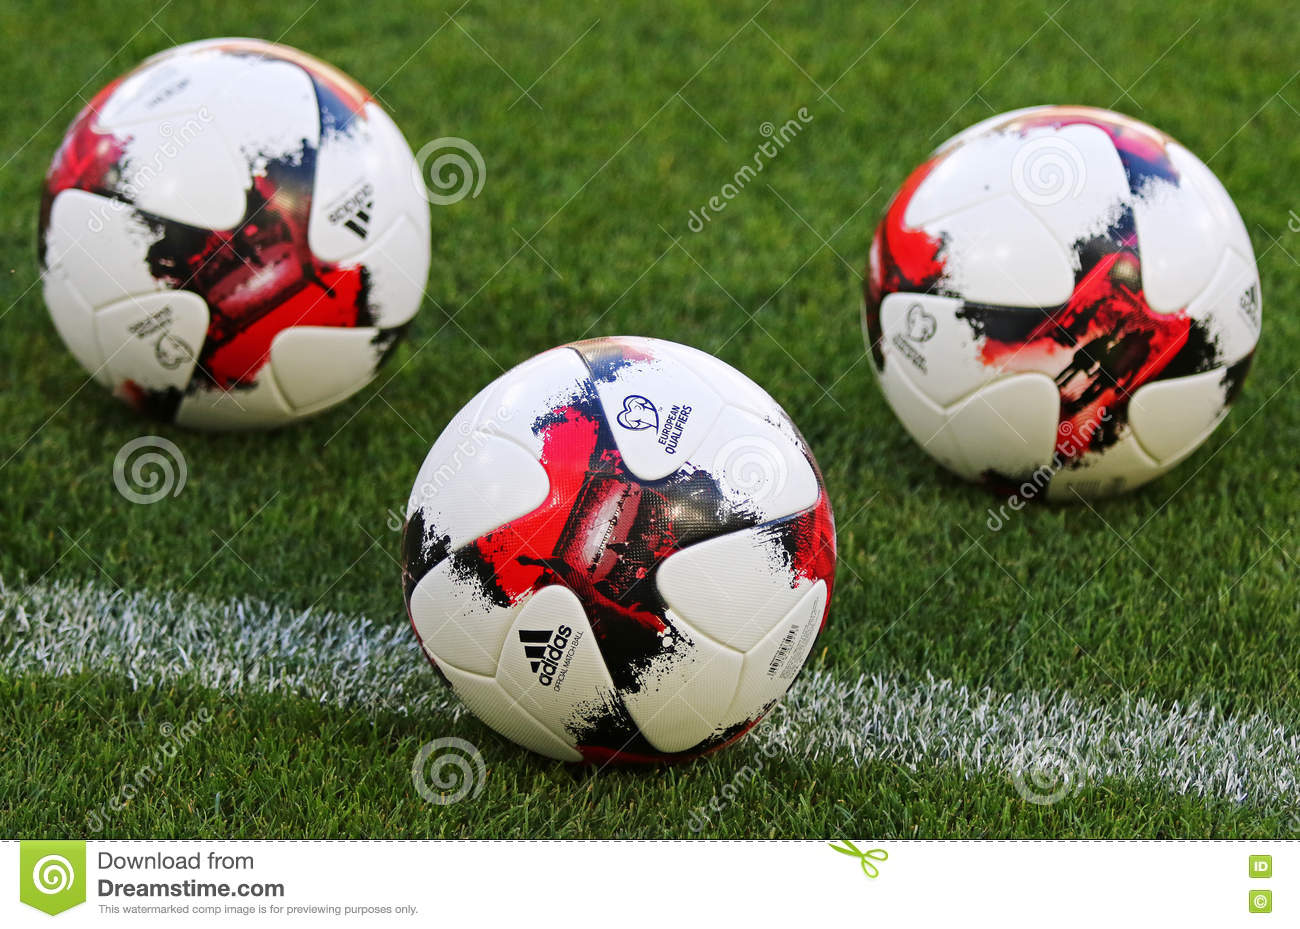 Great Football Ball World Cup 2018 - official-match-balls-fifa-world-cup-kyiv-ukraine-august-qualifying-matches-grass-nsc-olympic-stadium-open-76668822  You Should Have_409958 .jpg